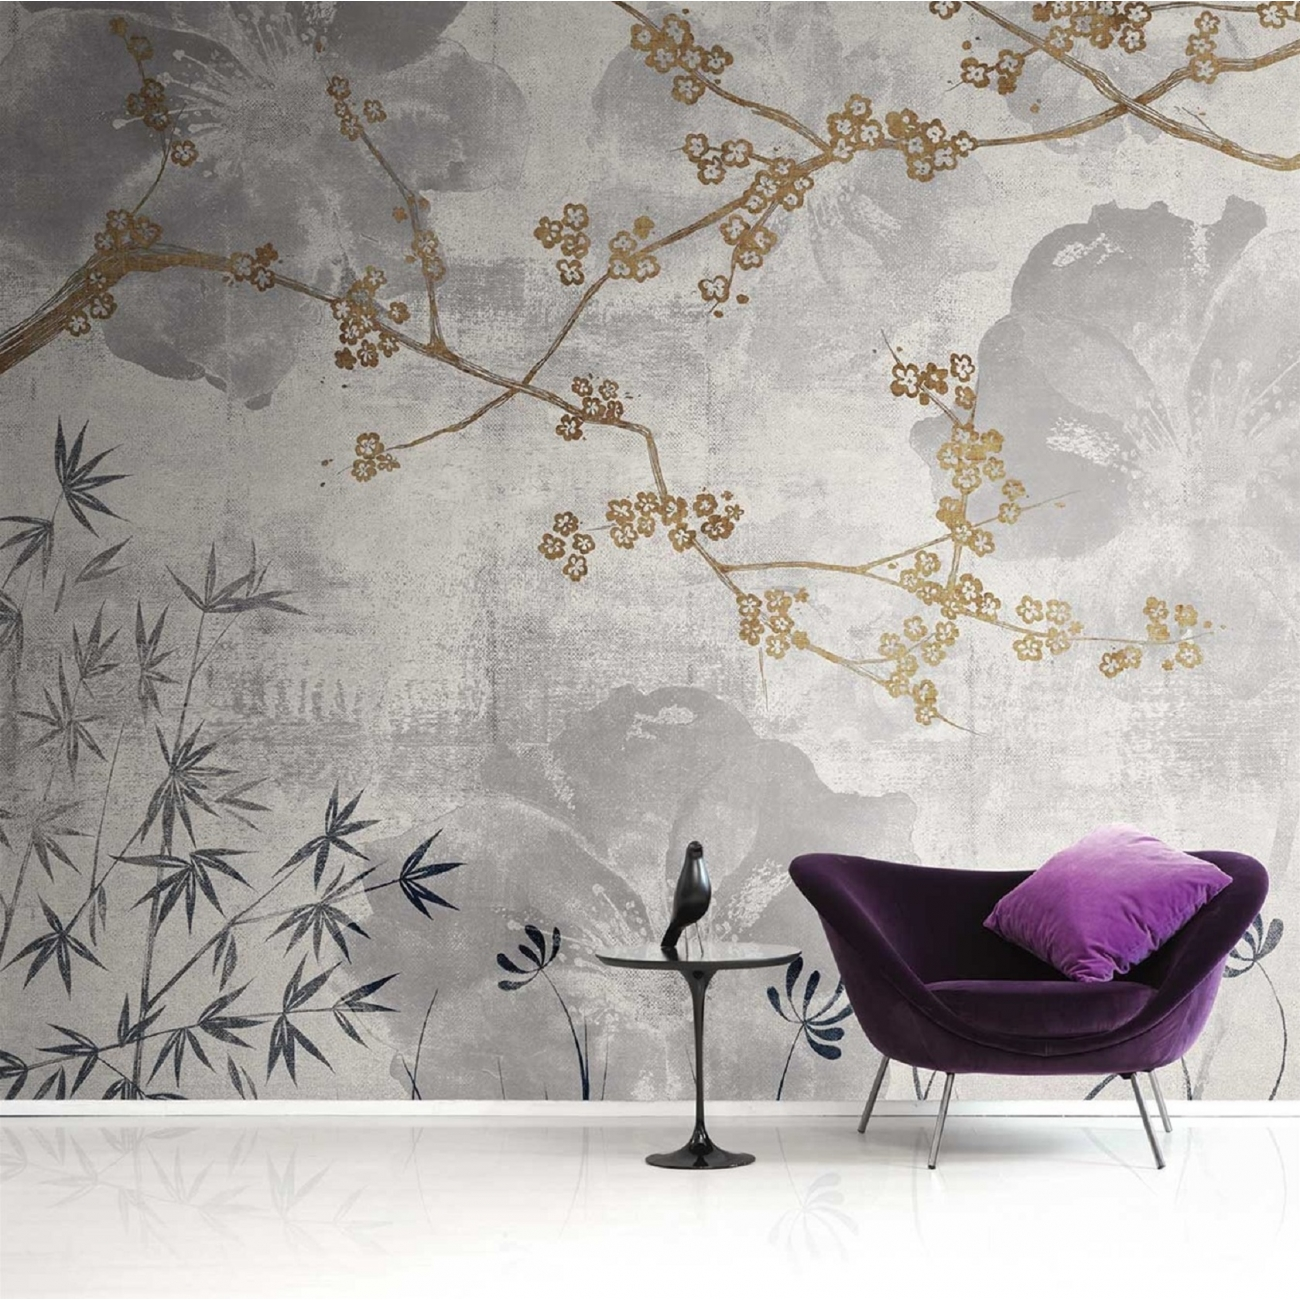 London Art Better Days Wallpaper Tattahome